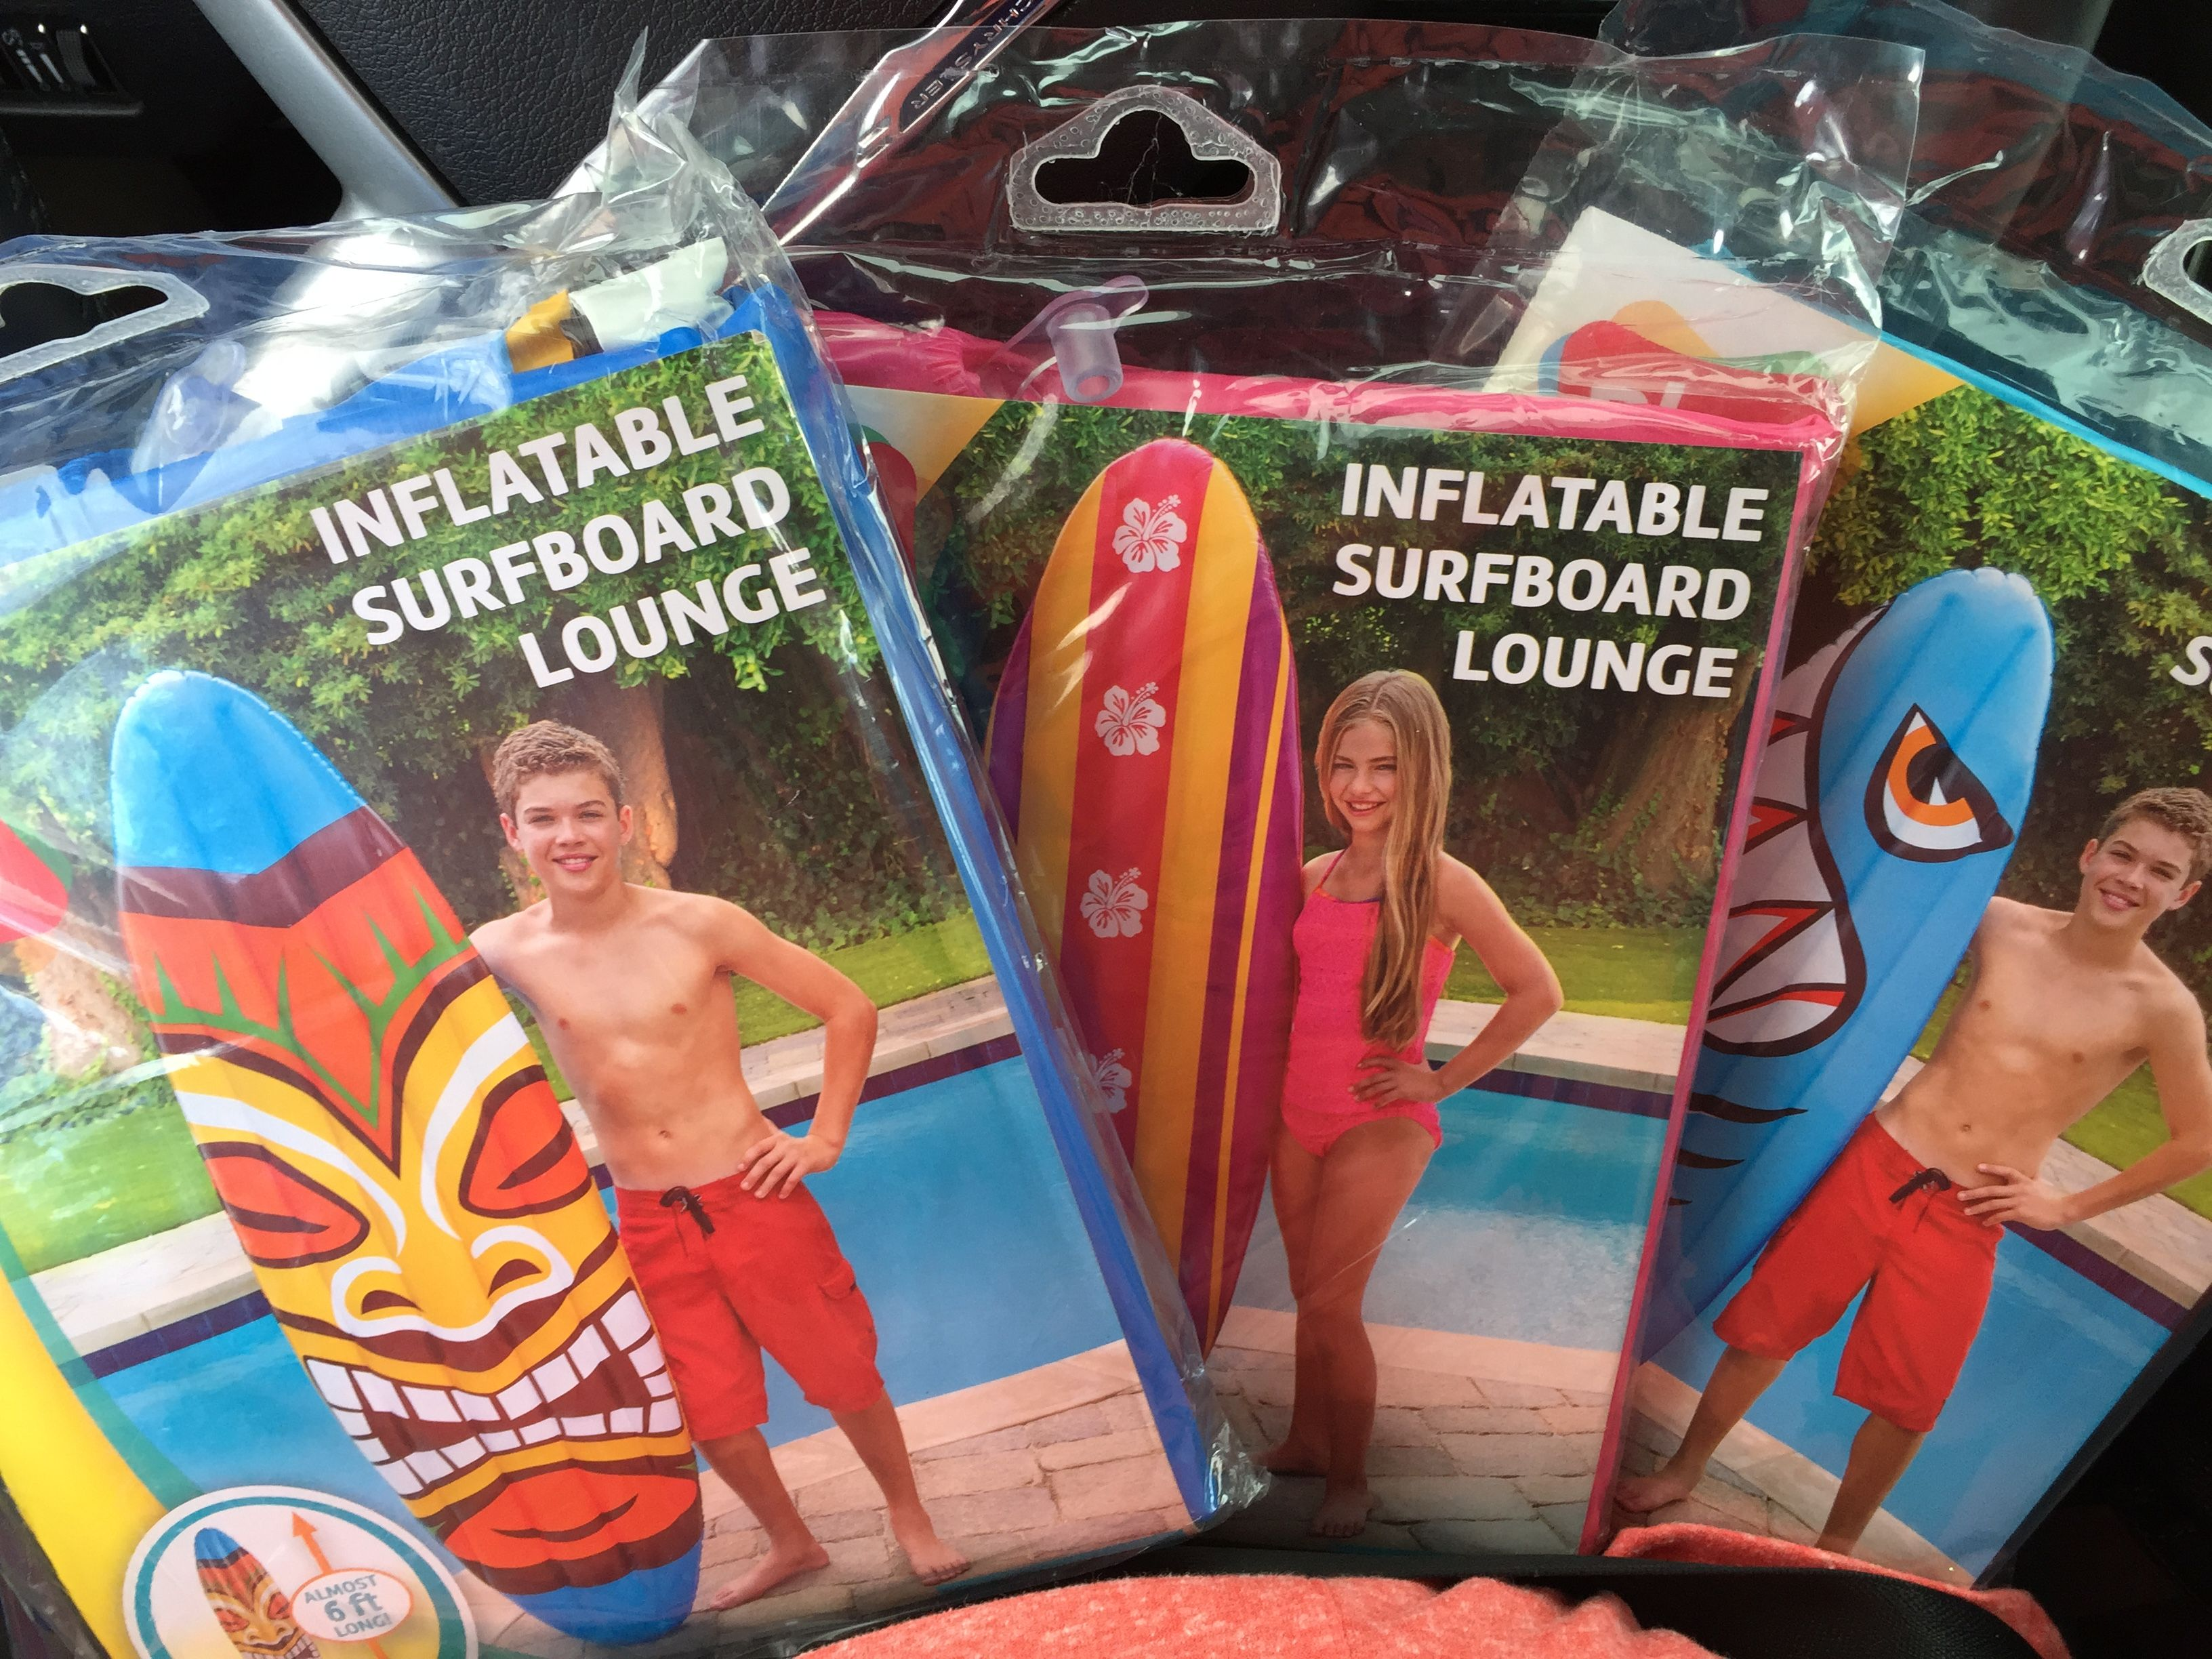 Wow!  Look what I found at Walmart this morning. Large inflatable surfboards. Under $6.